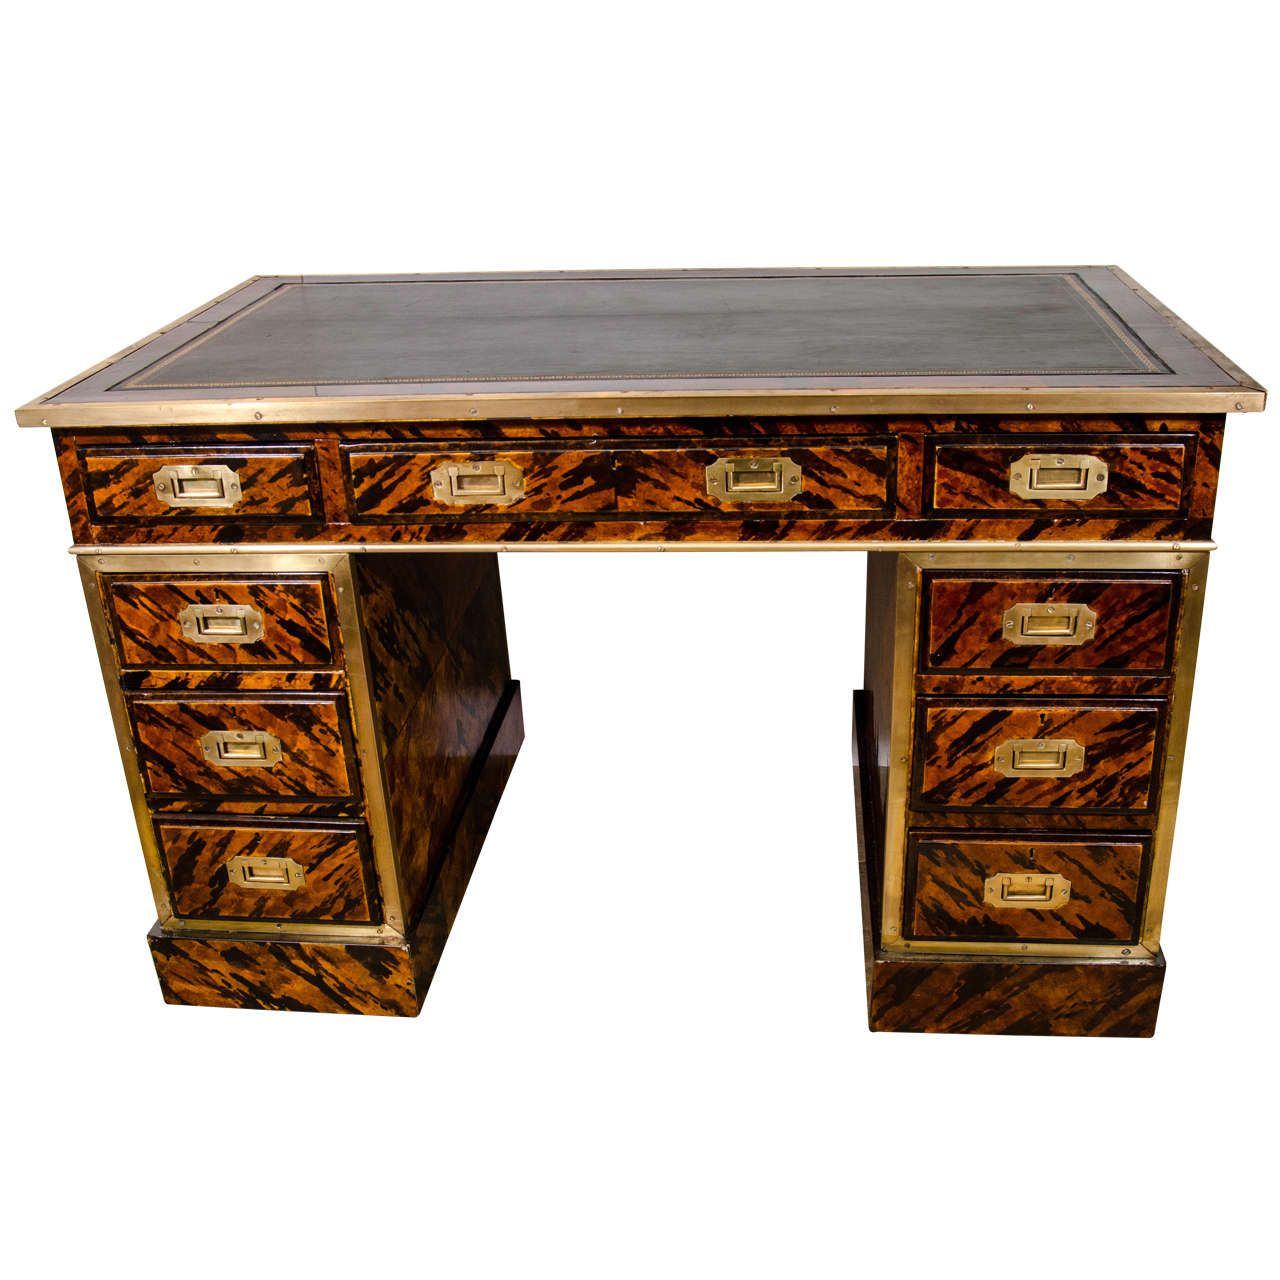 Painted Desk unusual campaign tortoise shell painted desk | tortoise shell and